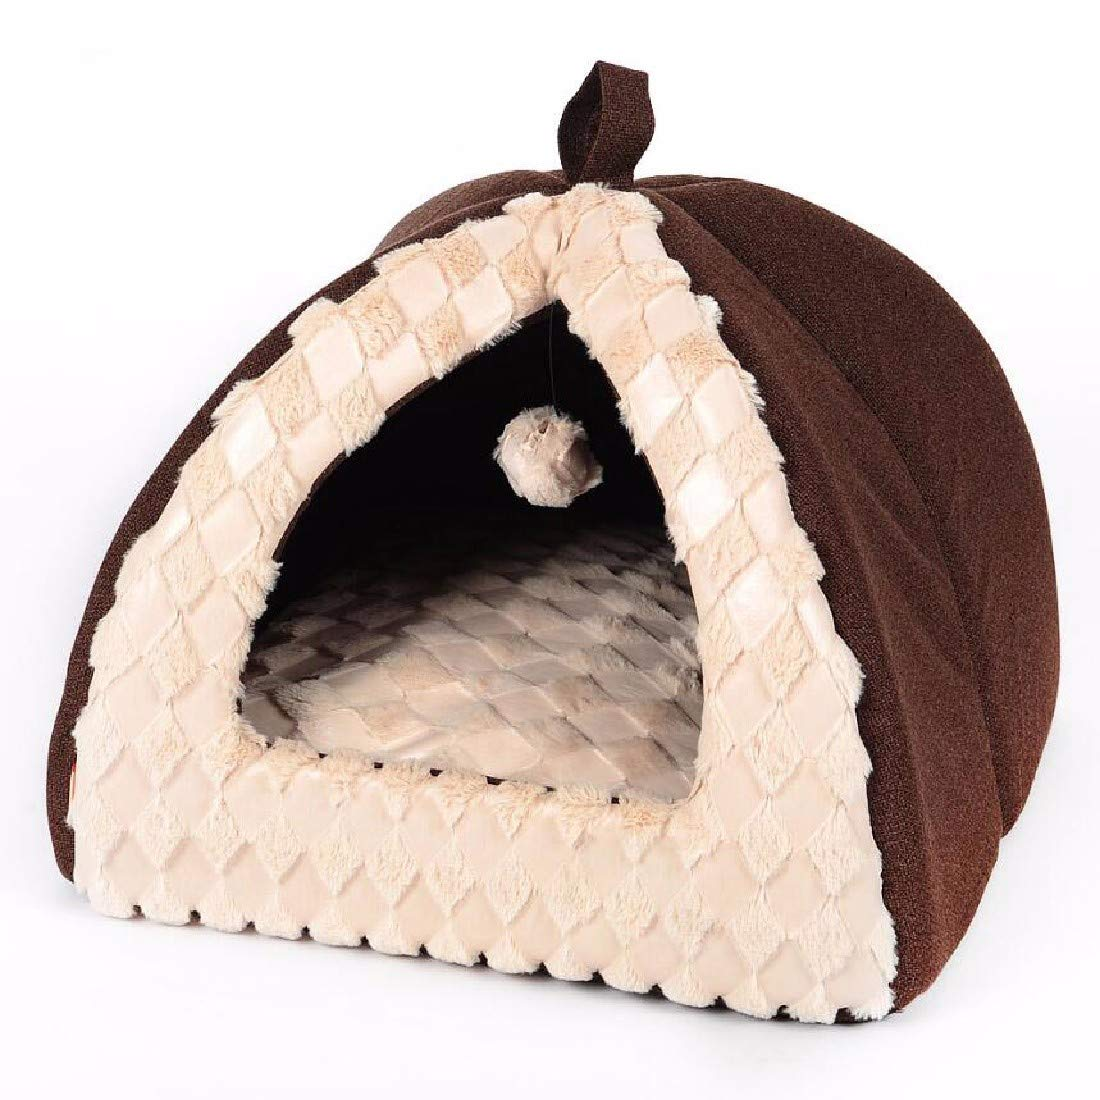 40x40x34cm Pet Dog Cat House Bed Pet Dog House can be Cleaned and Washed Dog House cat Litter Mongolia Bag pet Products,40x40x34cm